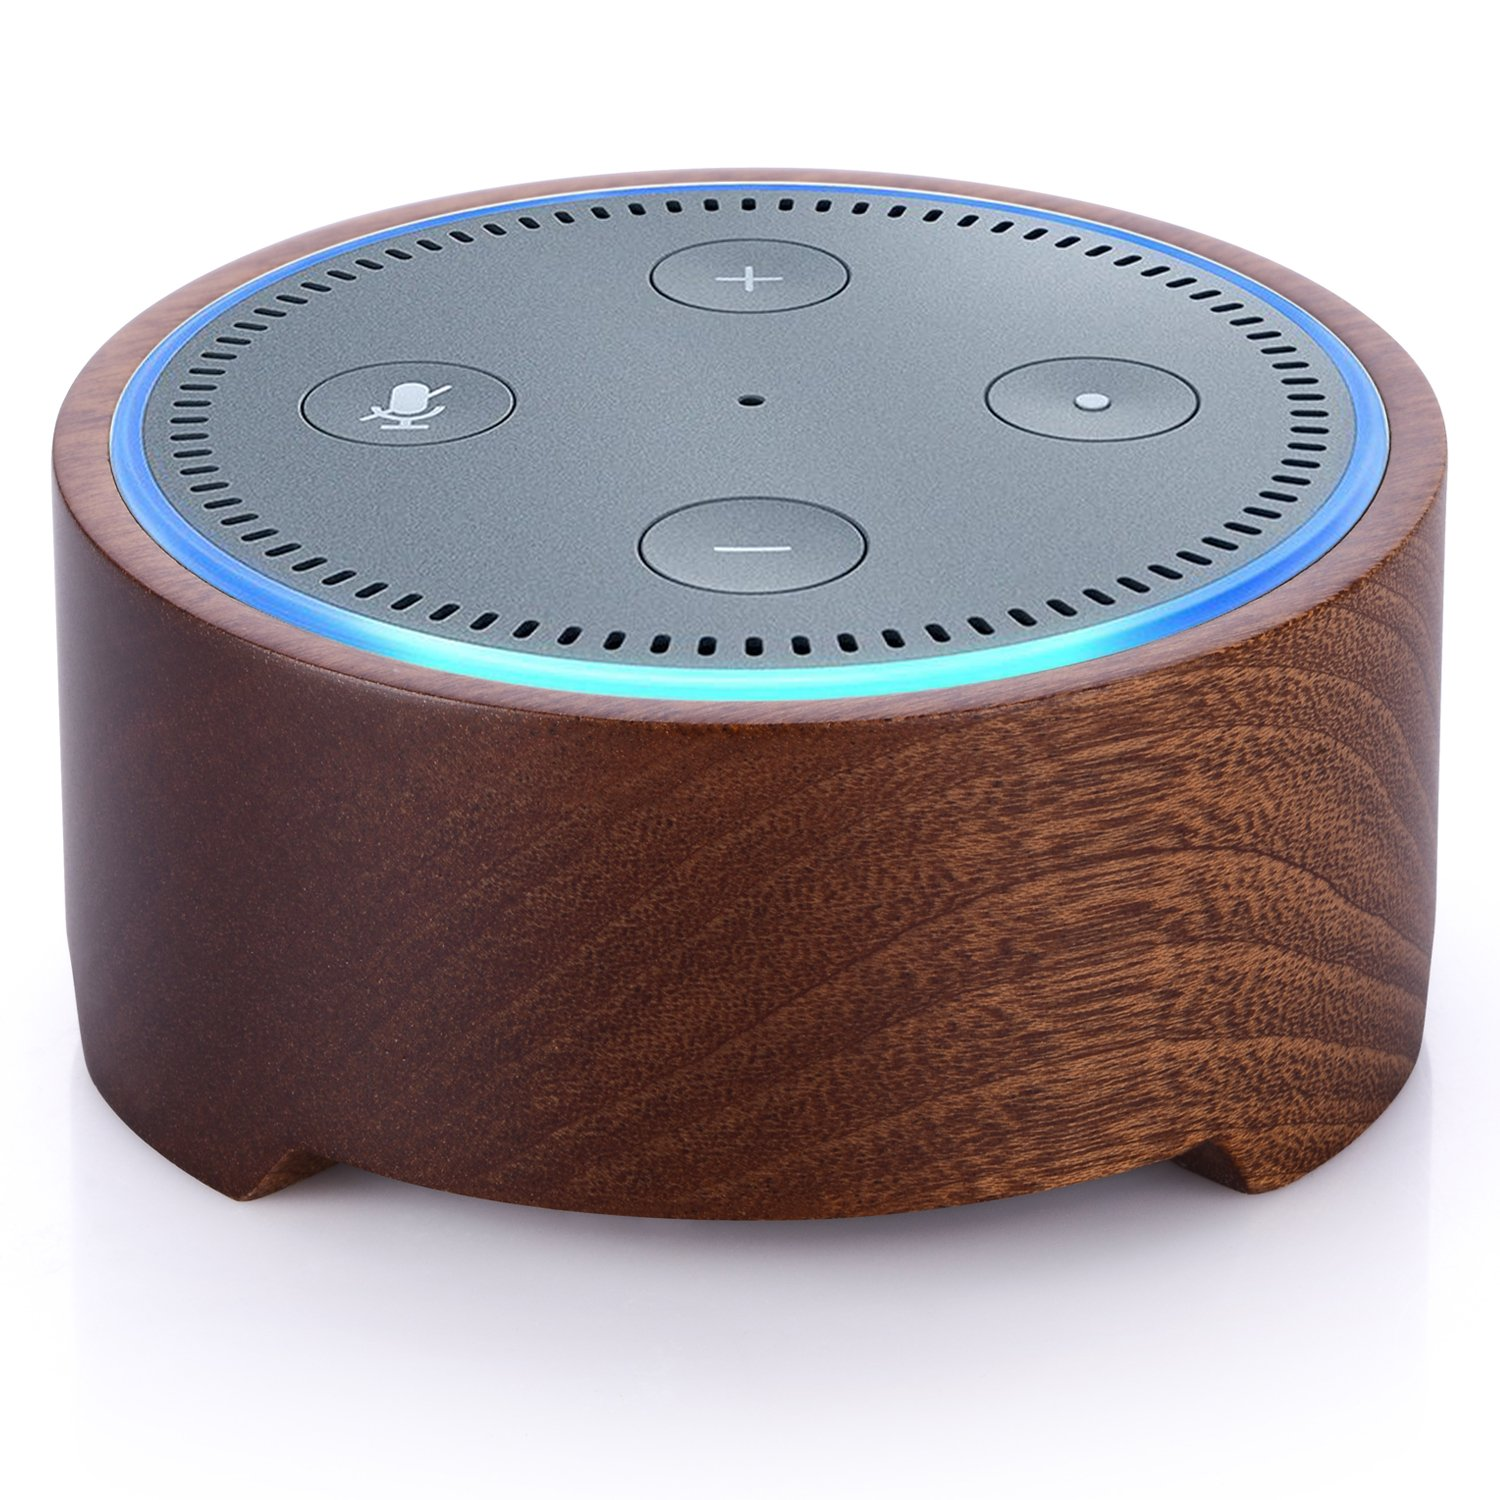 Natural Solid Wood Stand Holder Alexa, Piqiu Simple Amazon Echo Dot Case Echo Dot 2nd Generation, Jam Classic Speaker Base -Nice Decoration Kitchens Living Room